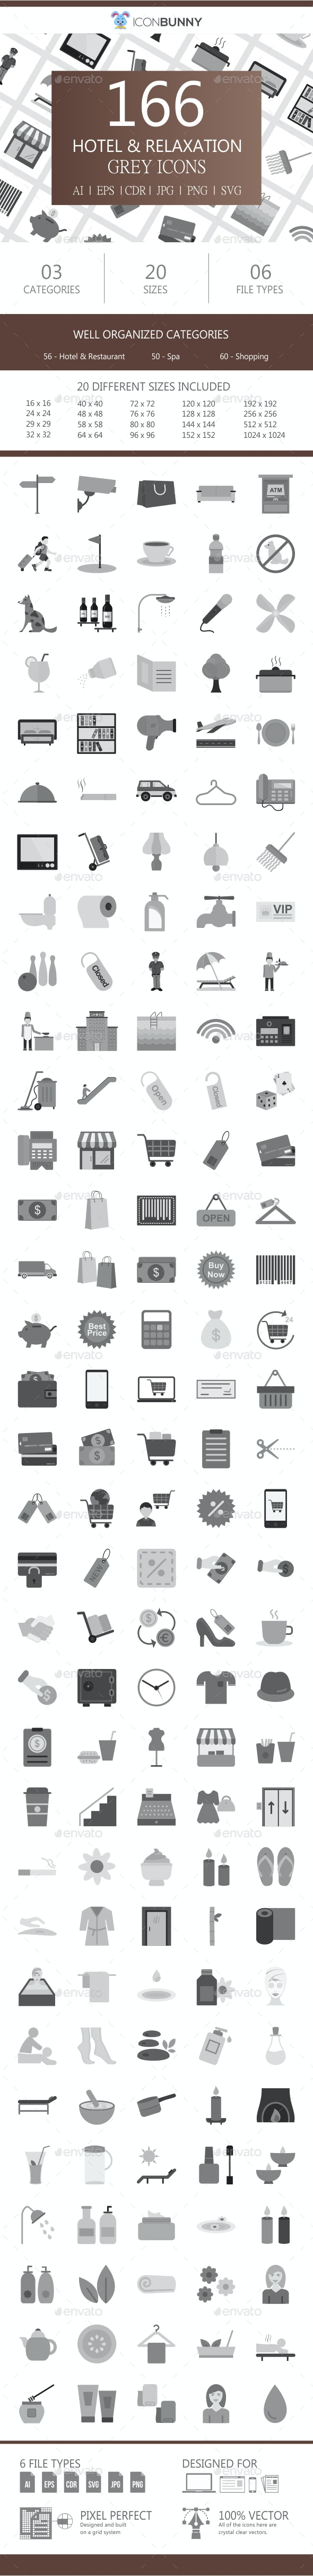 166 Hotel & Relaxation Flat Greyscale Icons - Icons